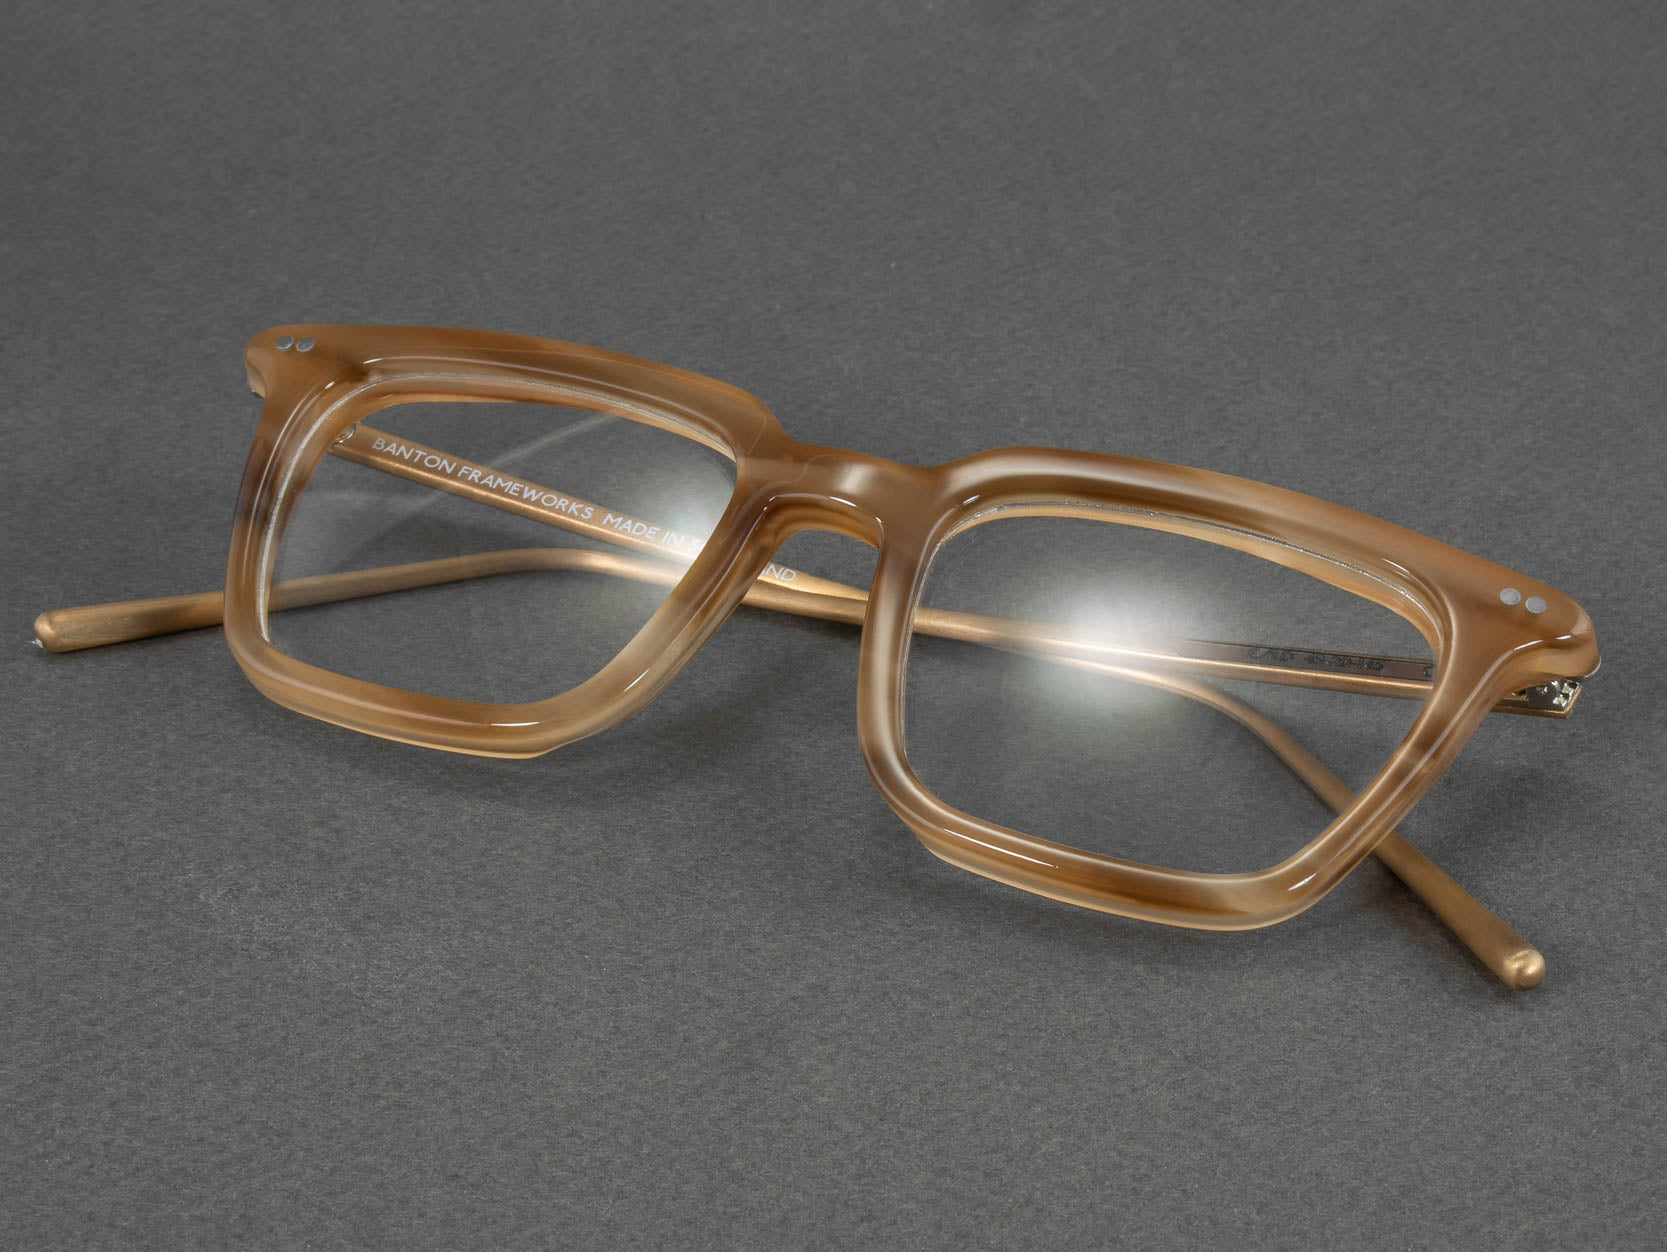 Optical glasses frame e rd folded